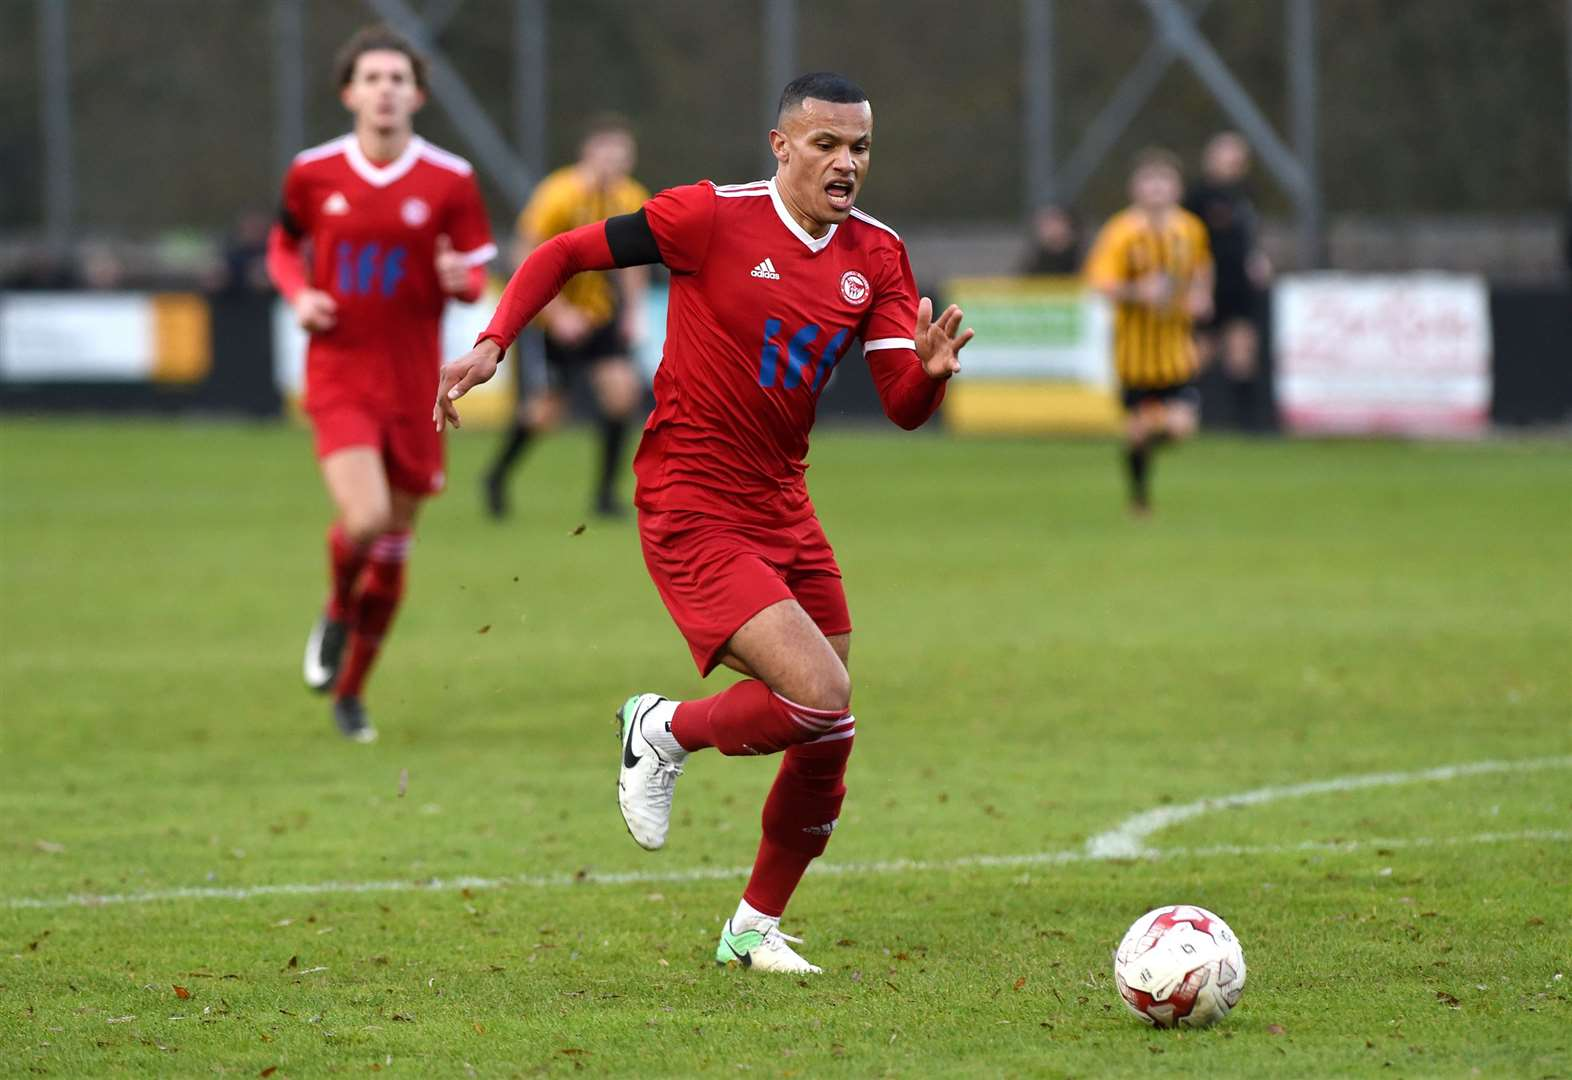 THURLOW NUNN: Haverhill Rovers defender moves to Hadleigh United